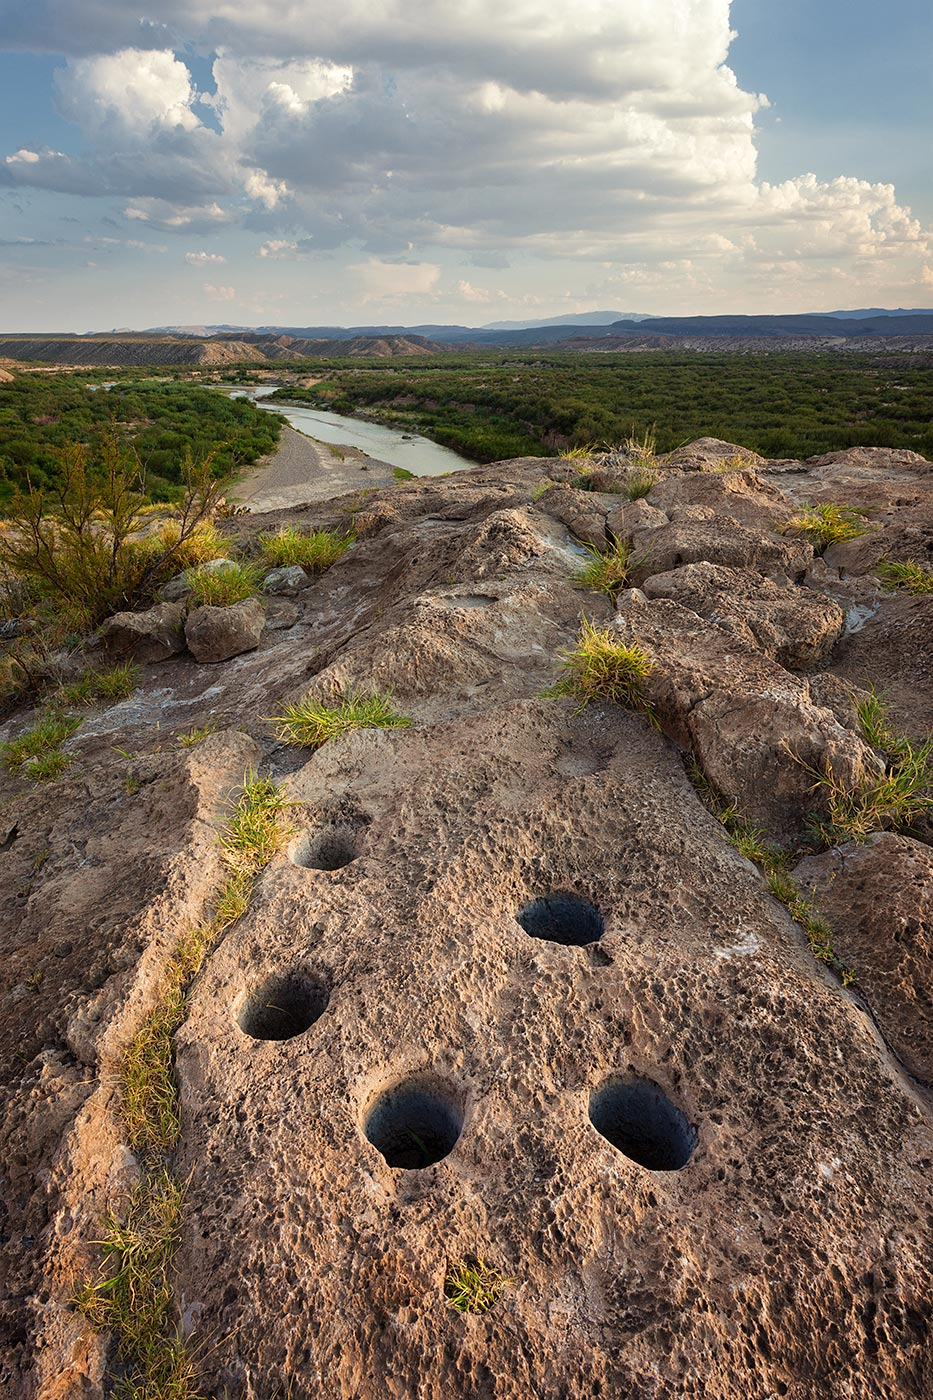 Ancient-Cultures_ABP_Mortar-Holes_Boquillas-Canyon.jpg